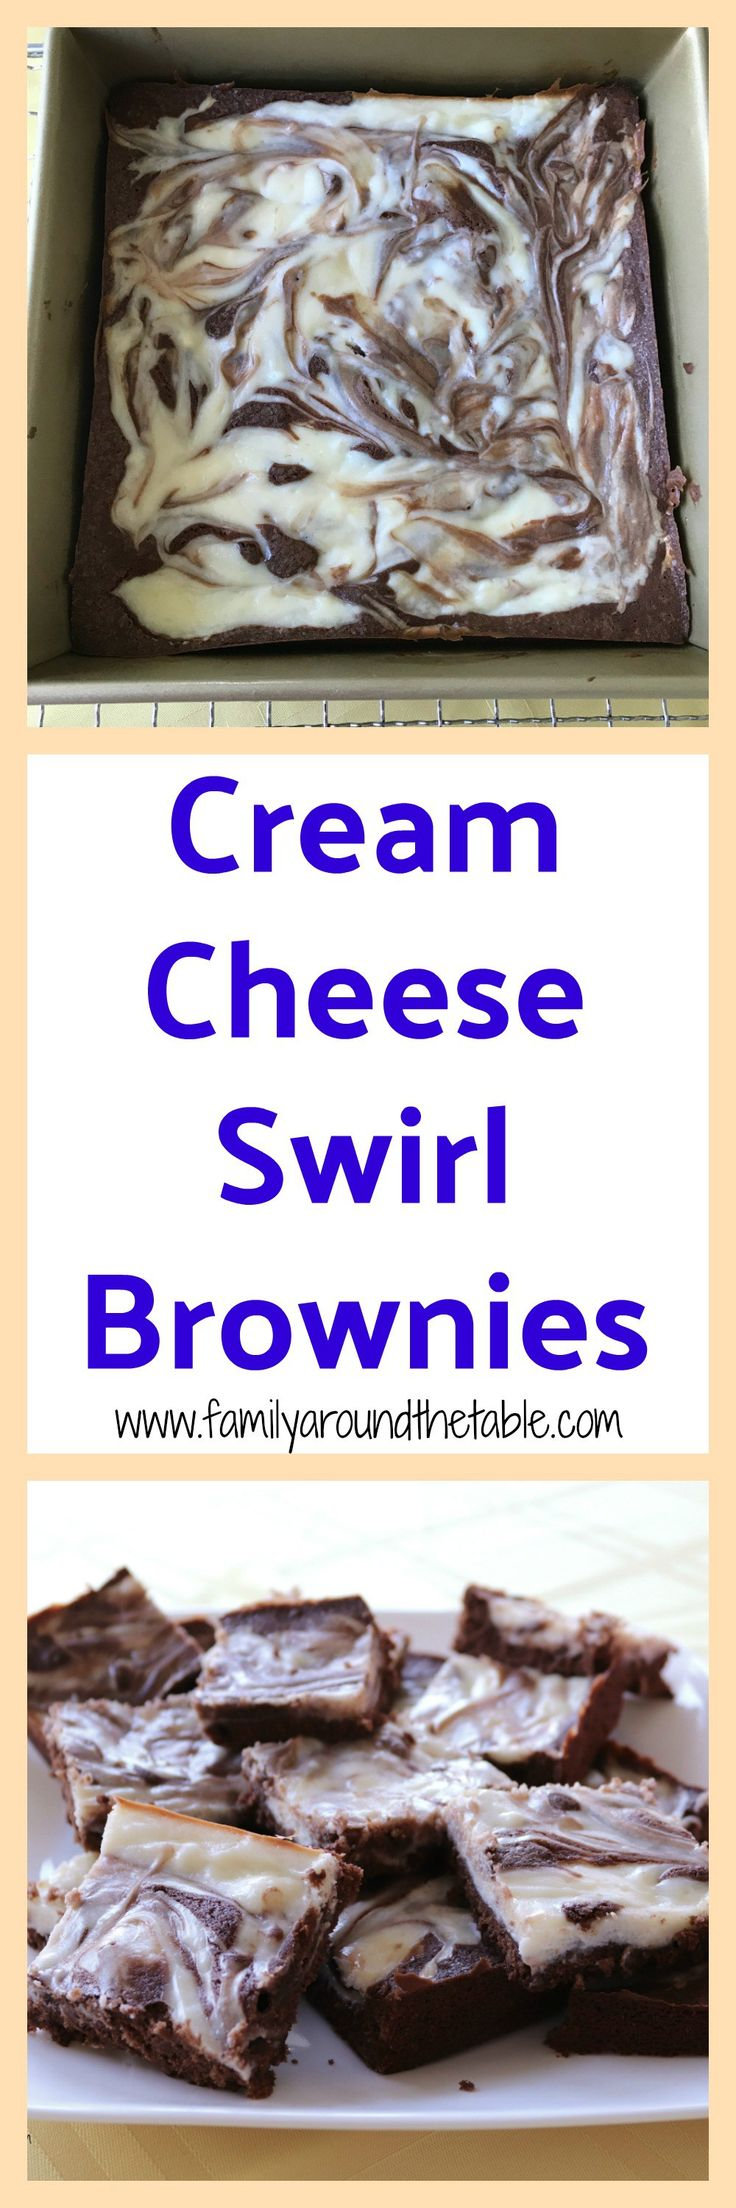 Cream cheese swirl brownies are moist and delicious.